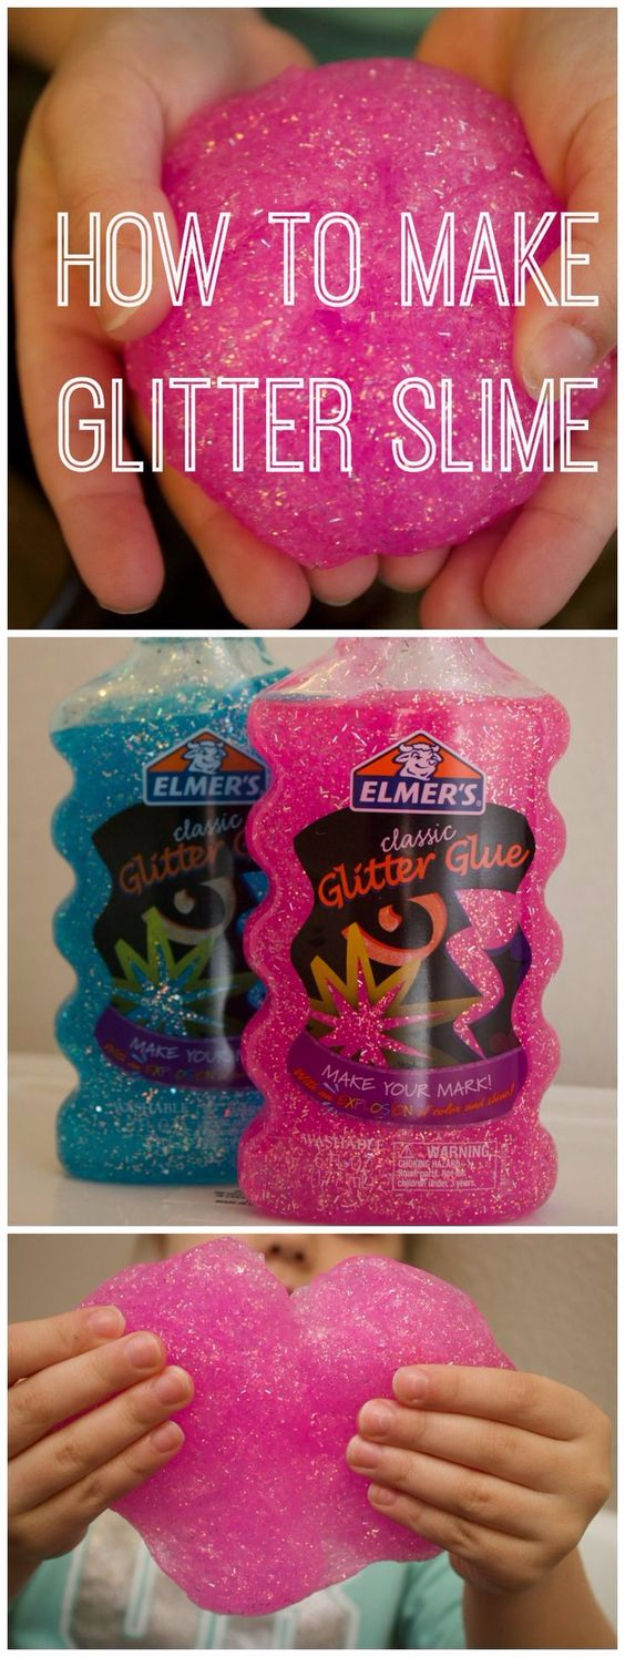 Crafts For Kids To Make At Home - 3-Ingredient Glitter Slime - Cheap DIY Projects and Fun Craft Ideas for Children - Cute Paper Crafts, Fall and Winter Fun, Things For Toddlers, Babies, Boys and Girls #kidscrafts #crafts #kids